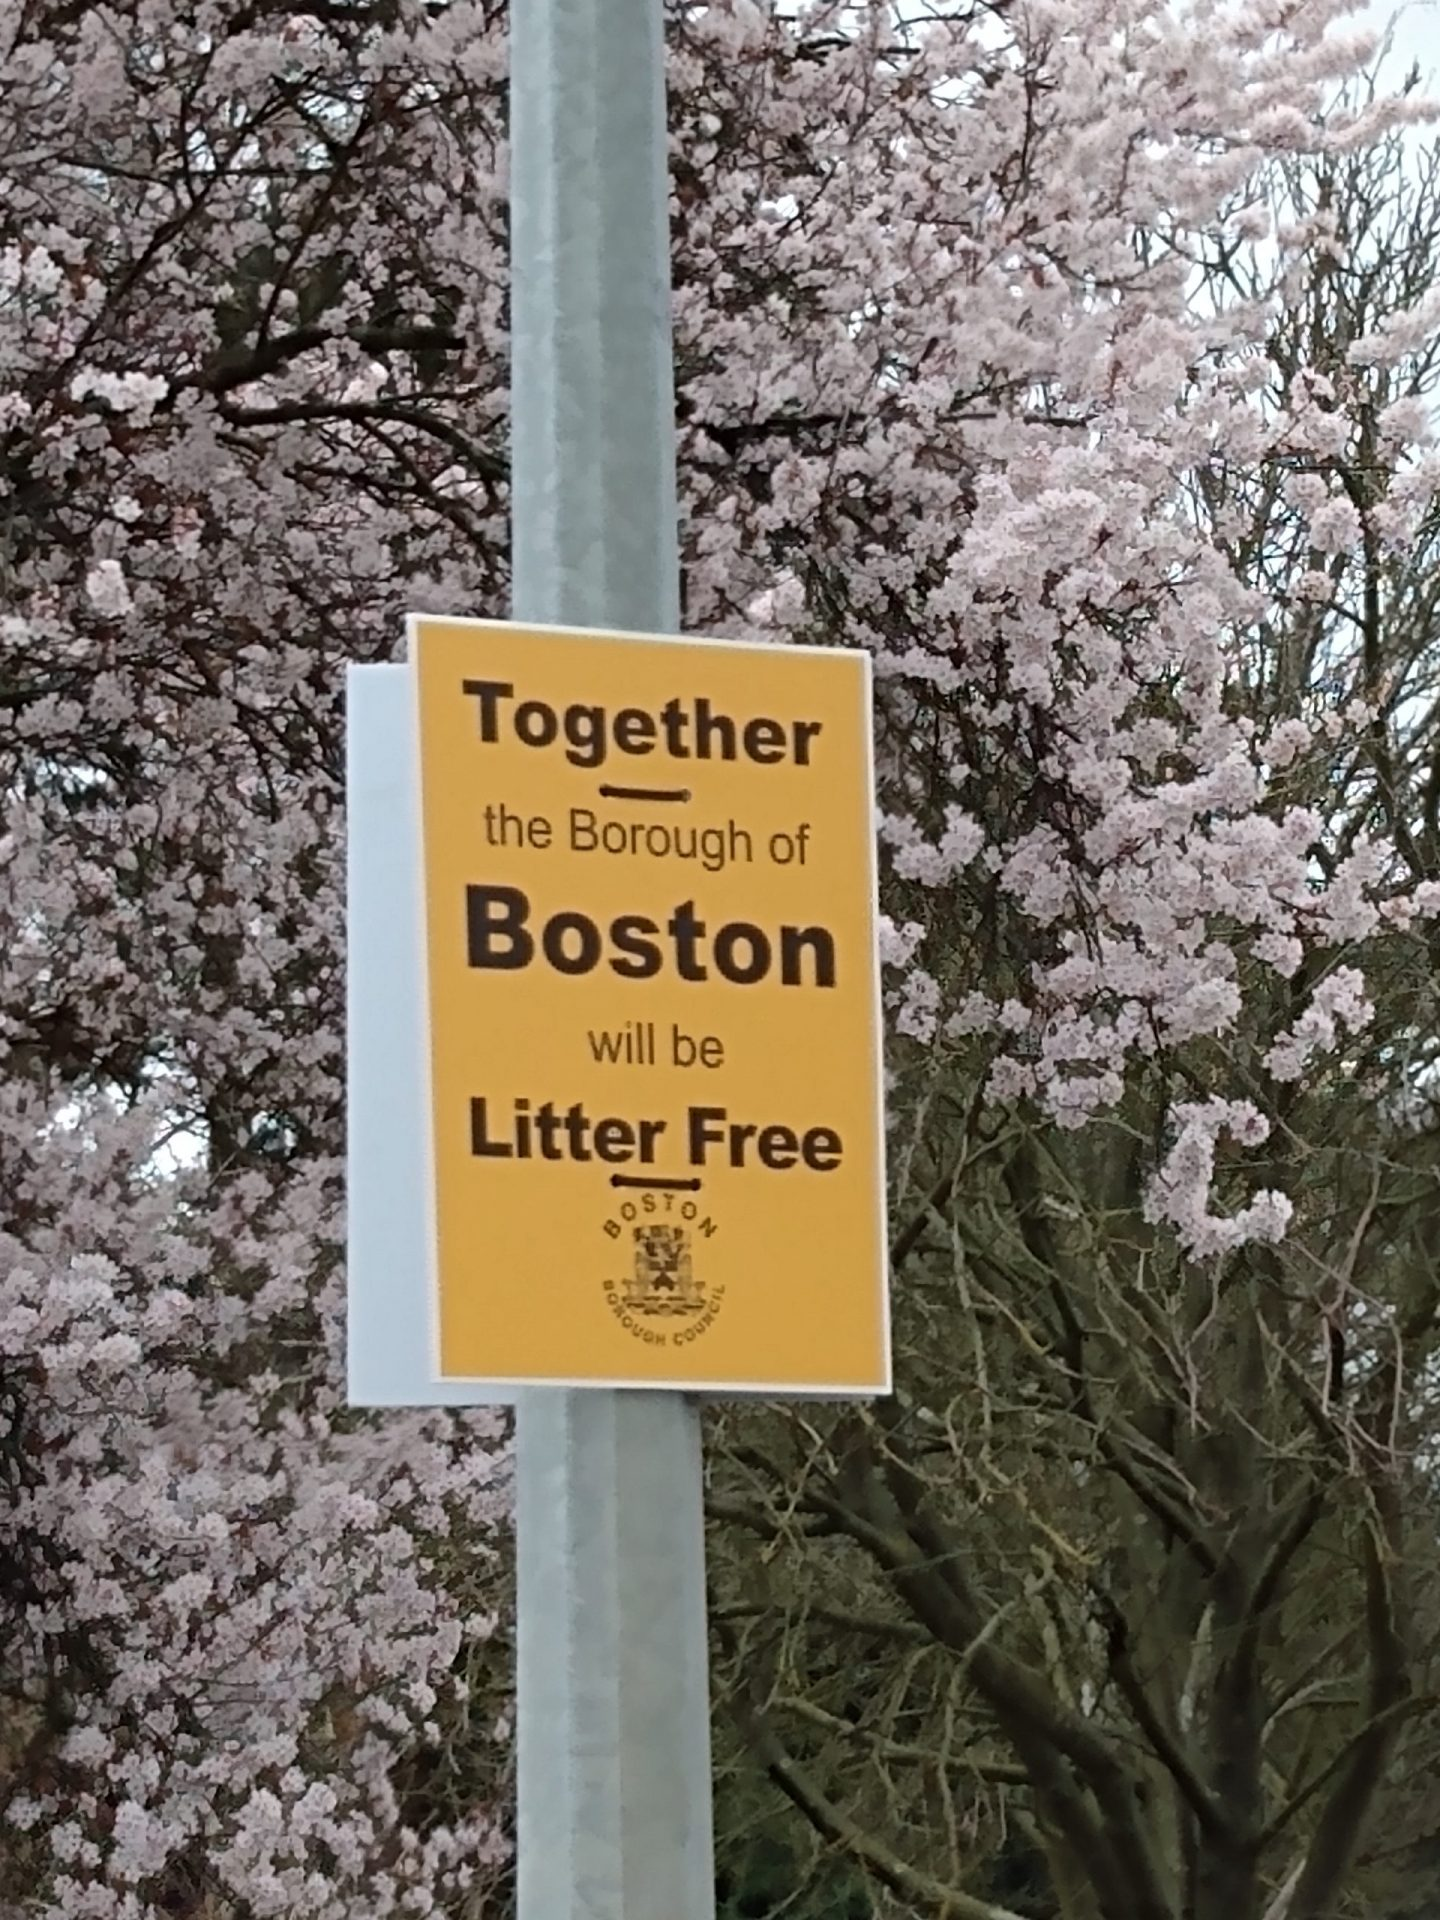 Campaign to crackdown on littering on the lead up to restrictions easing